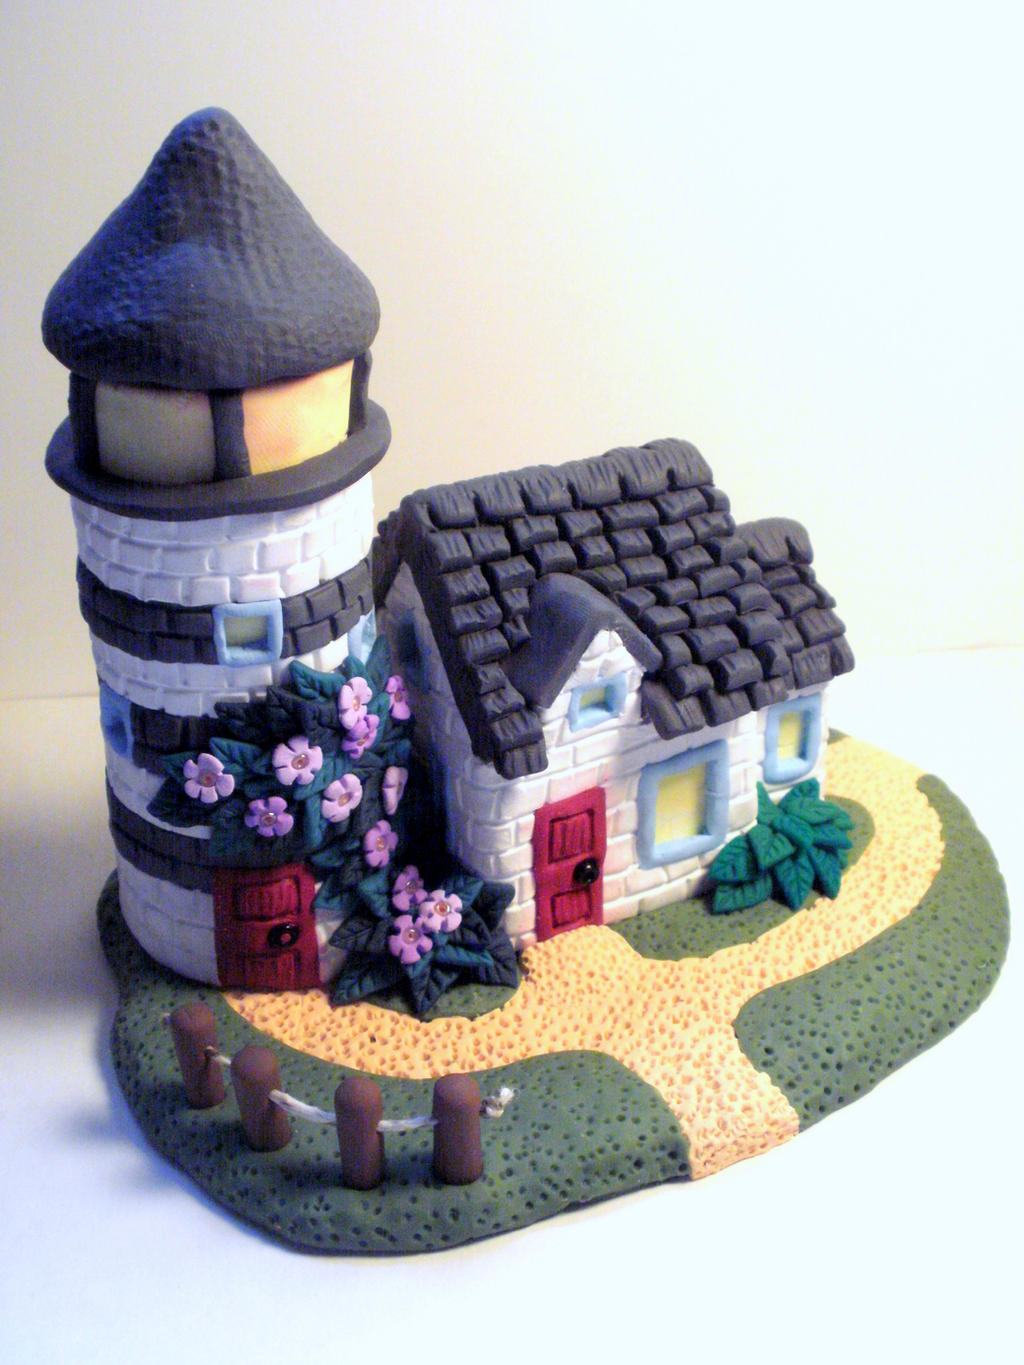 how to make a lighthouse out of clay